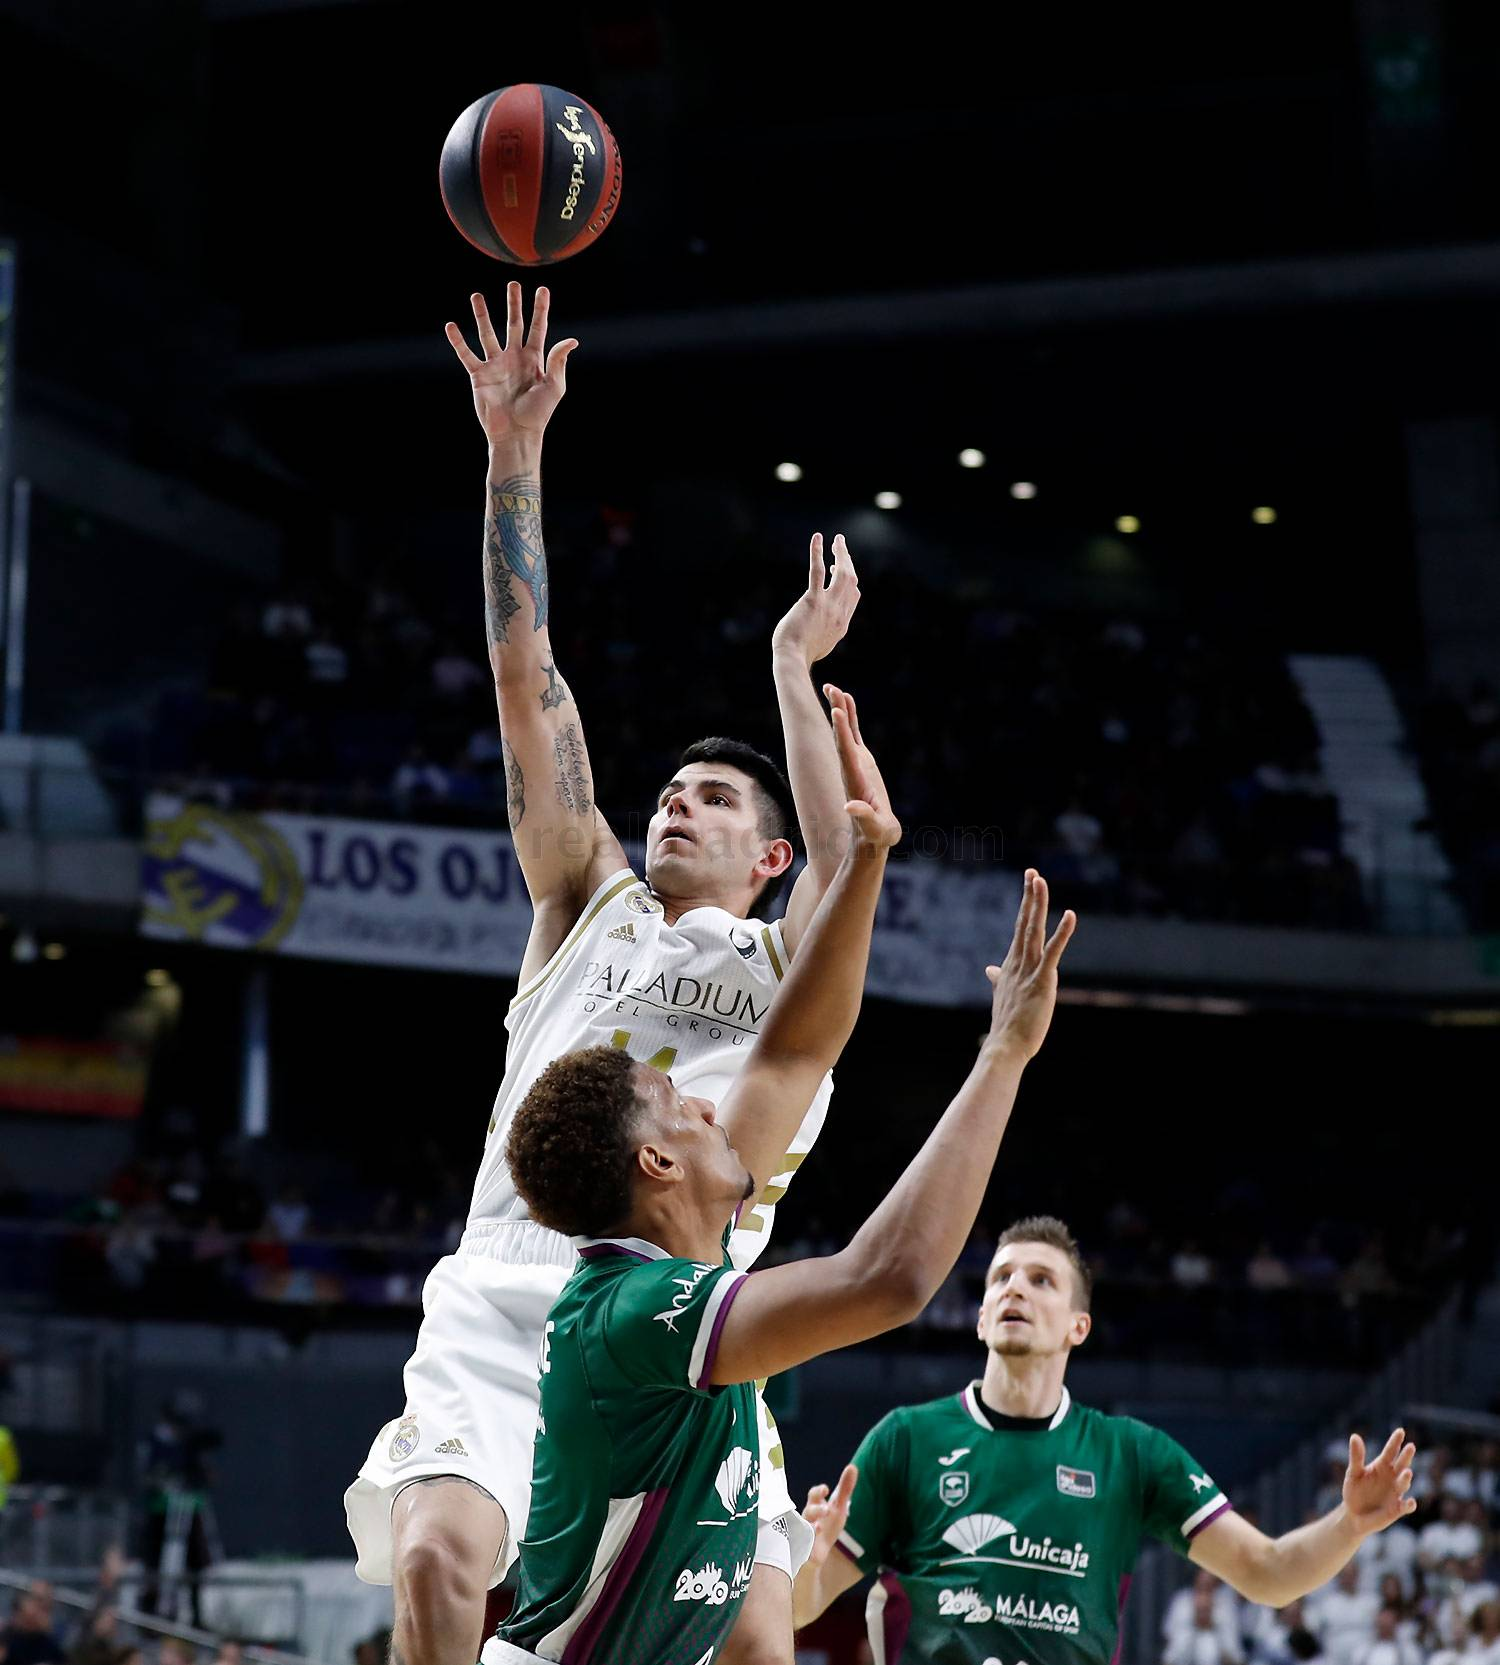 Real Madrid - Real Madrid - Unicaja - 10-11-2019